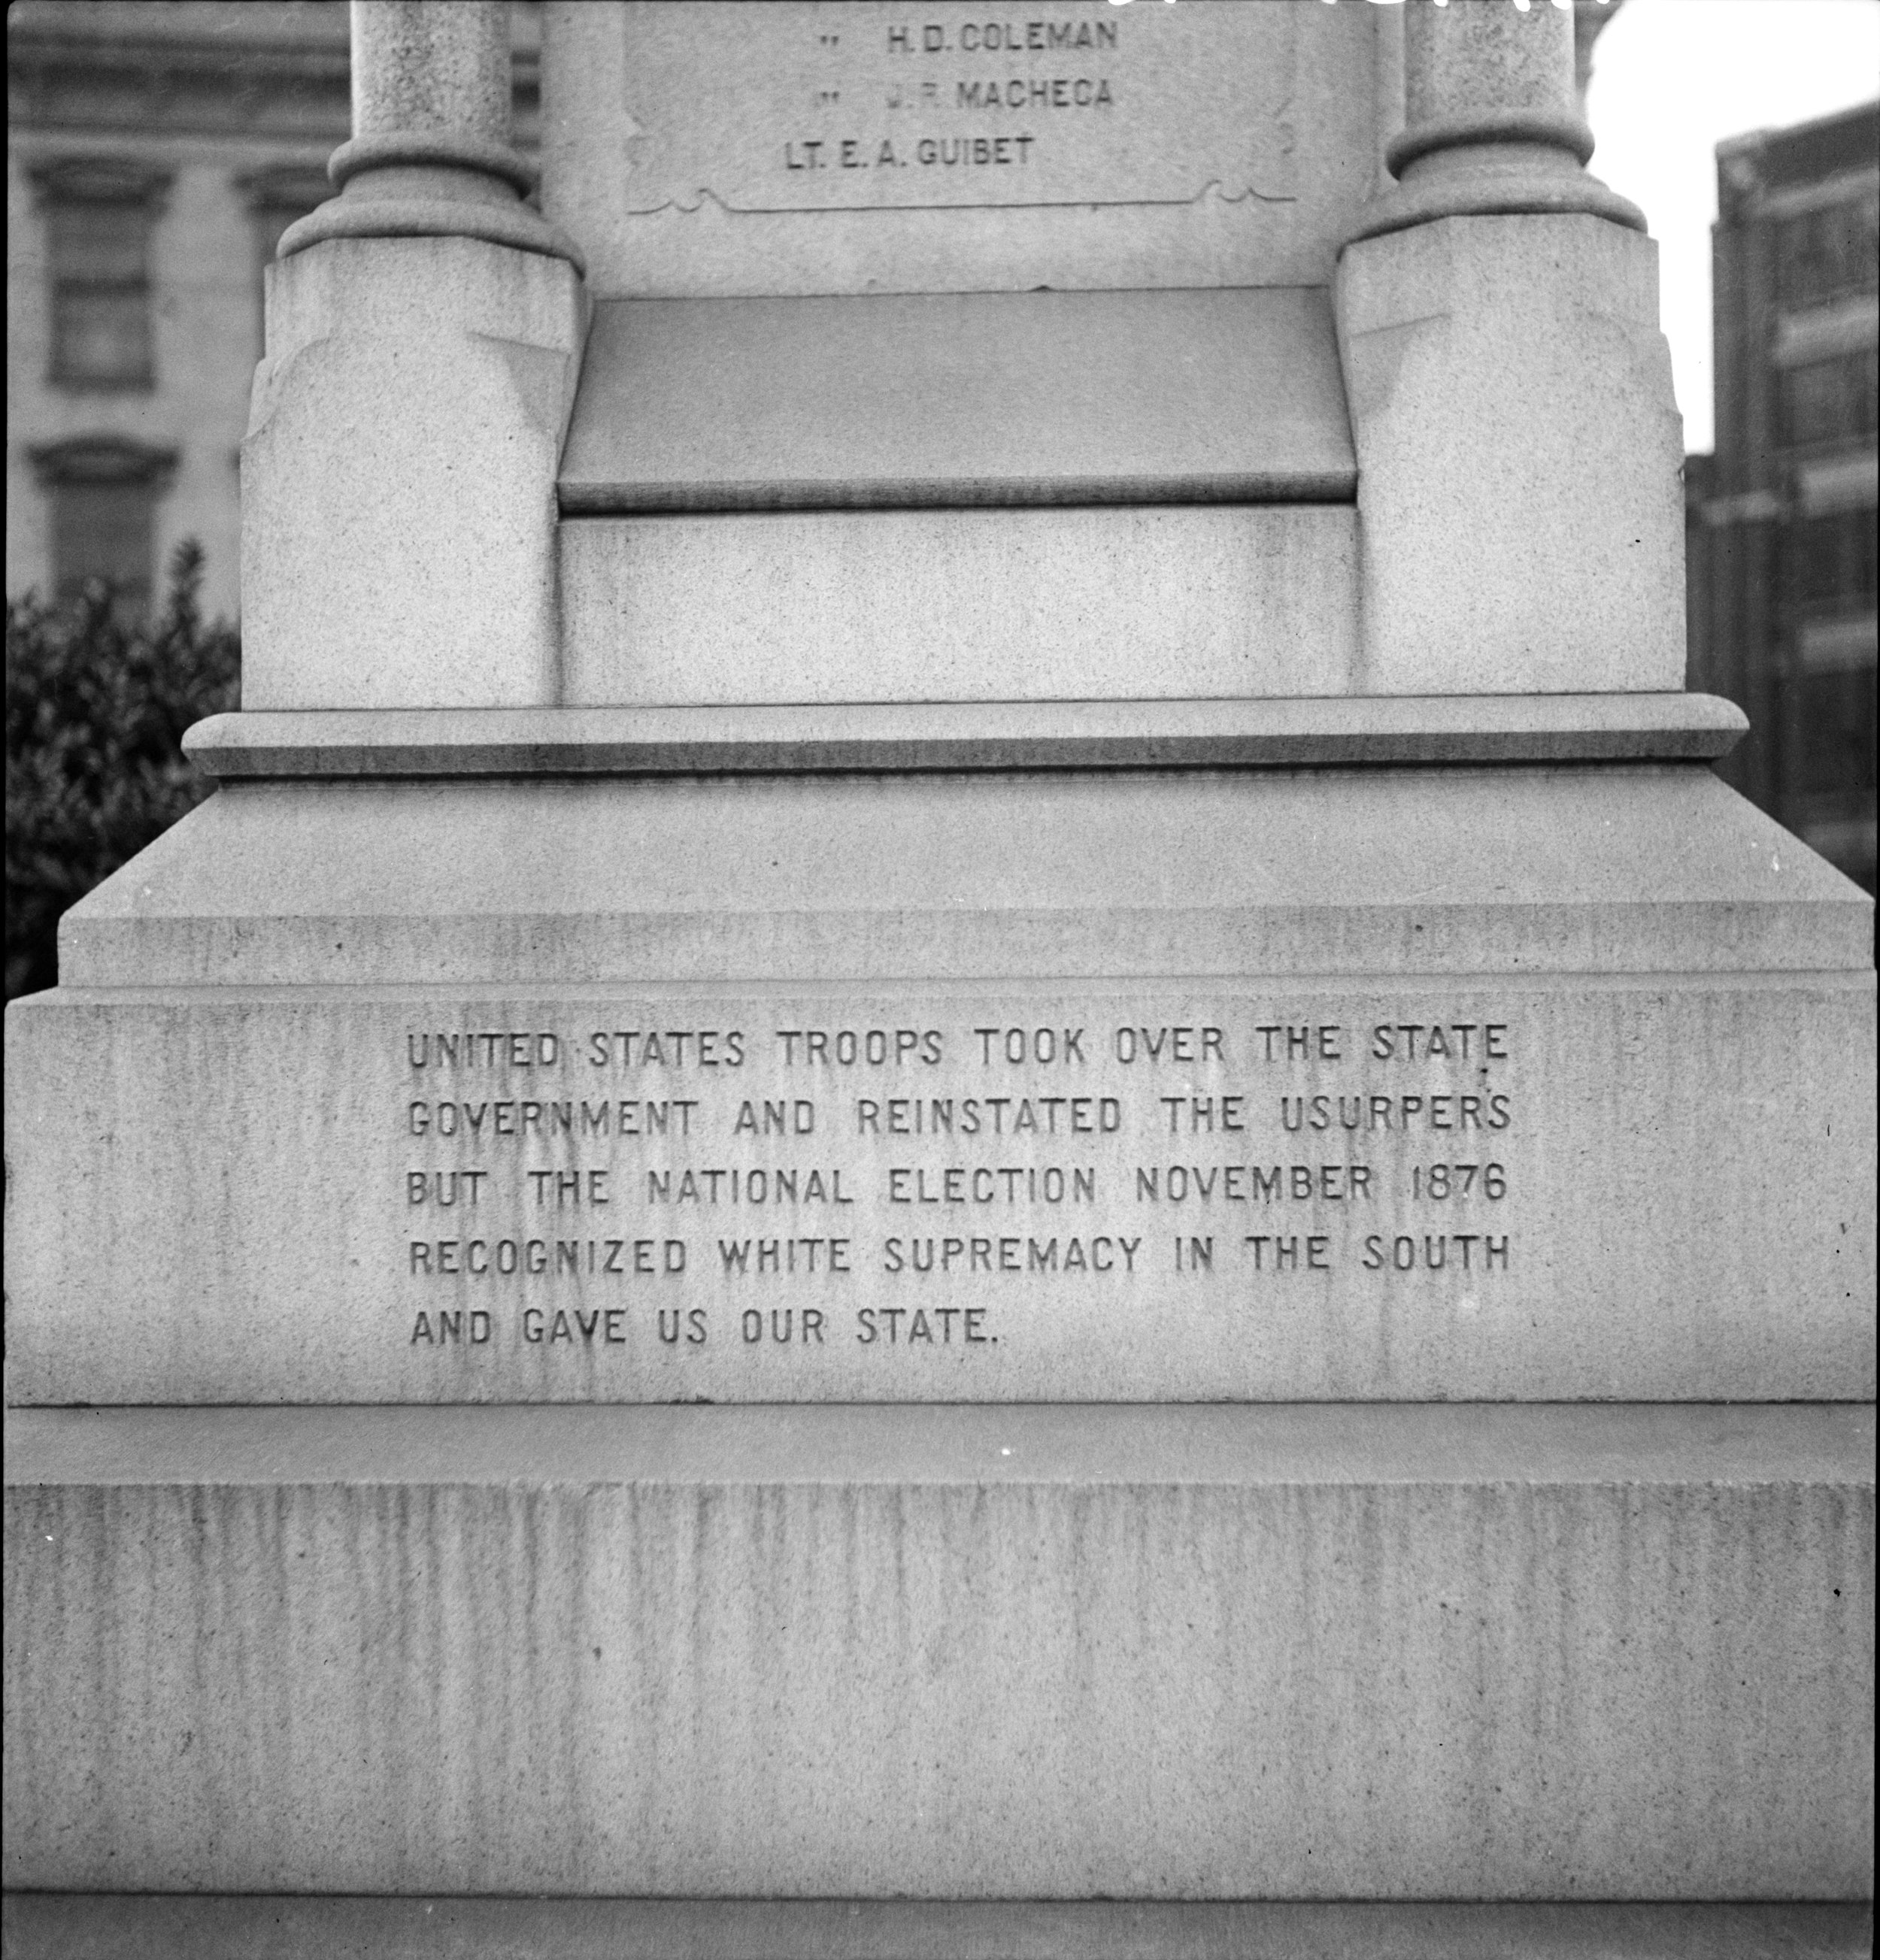 One_side_of_the_monument_erected_to_race_prejudice_New_Orleans_Louisiana_1936.jpg